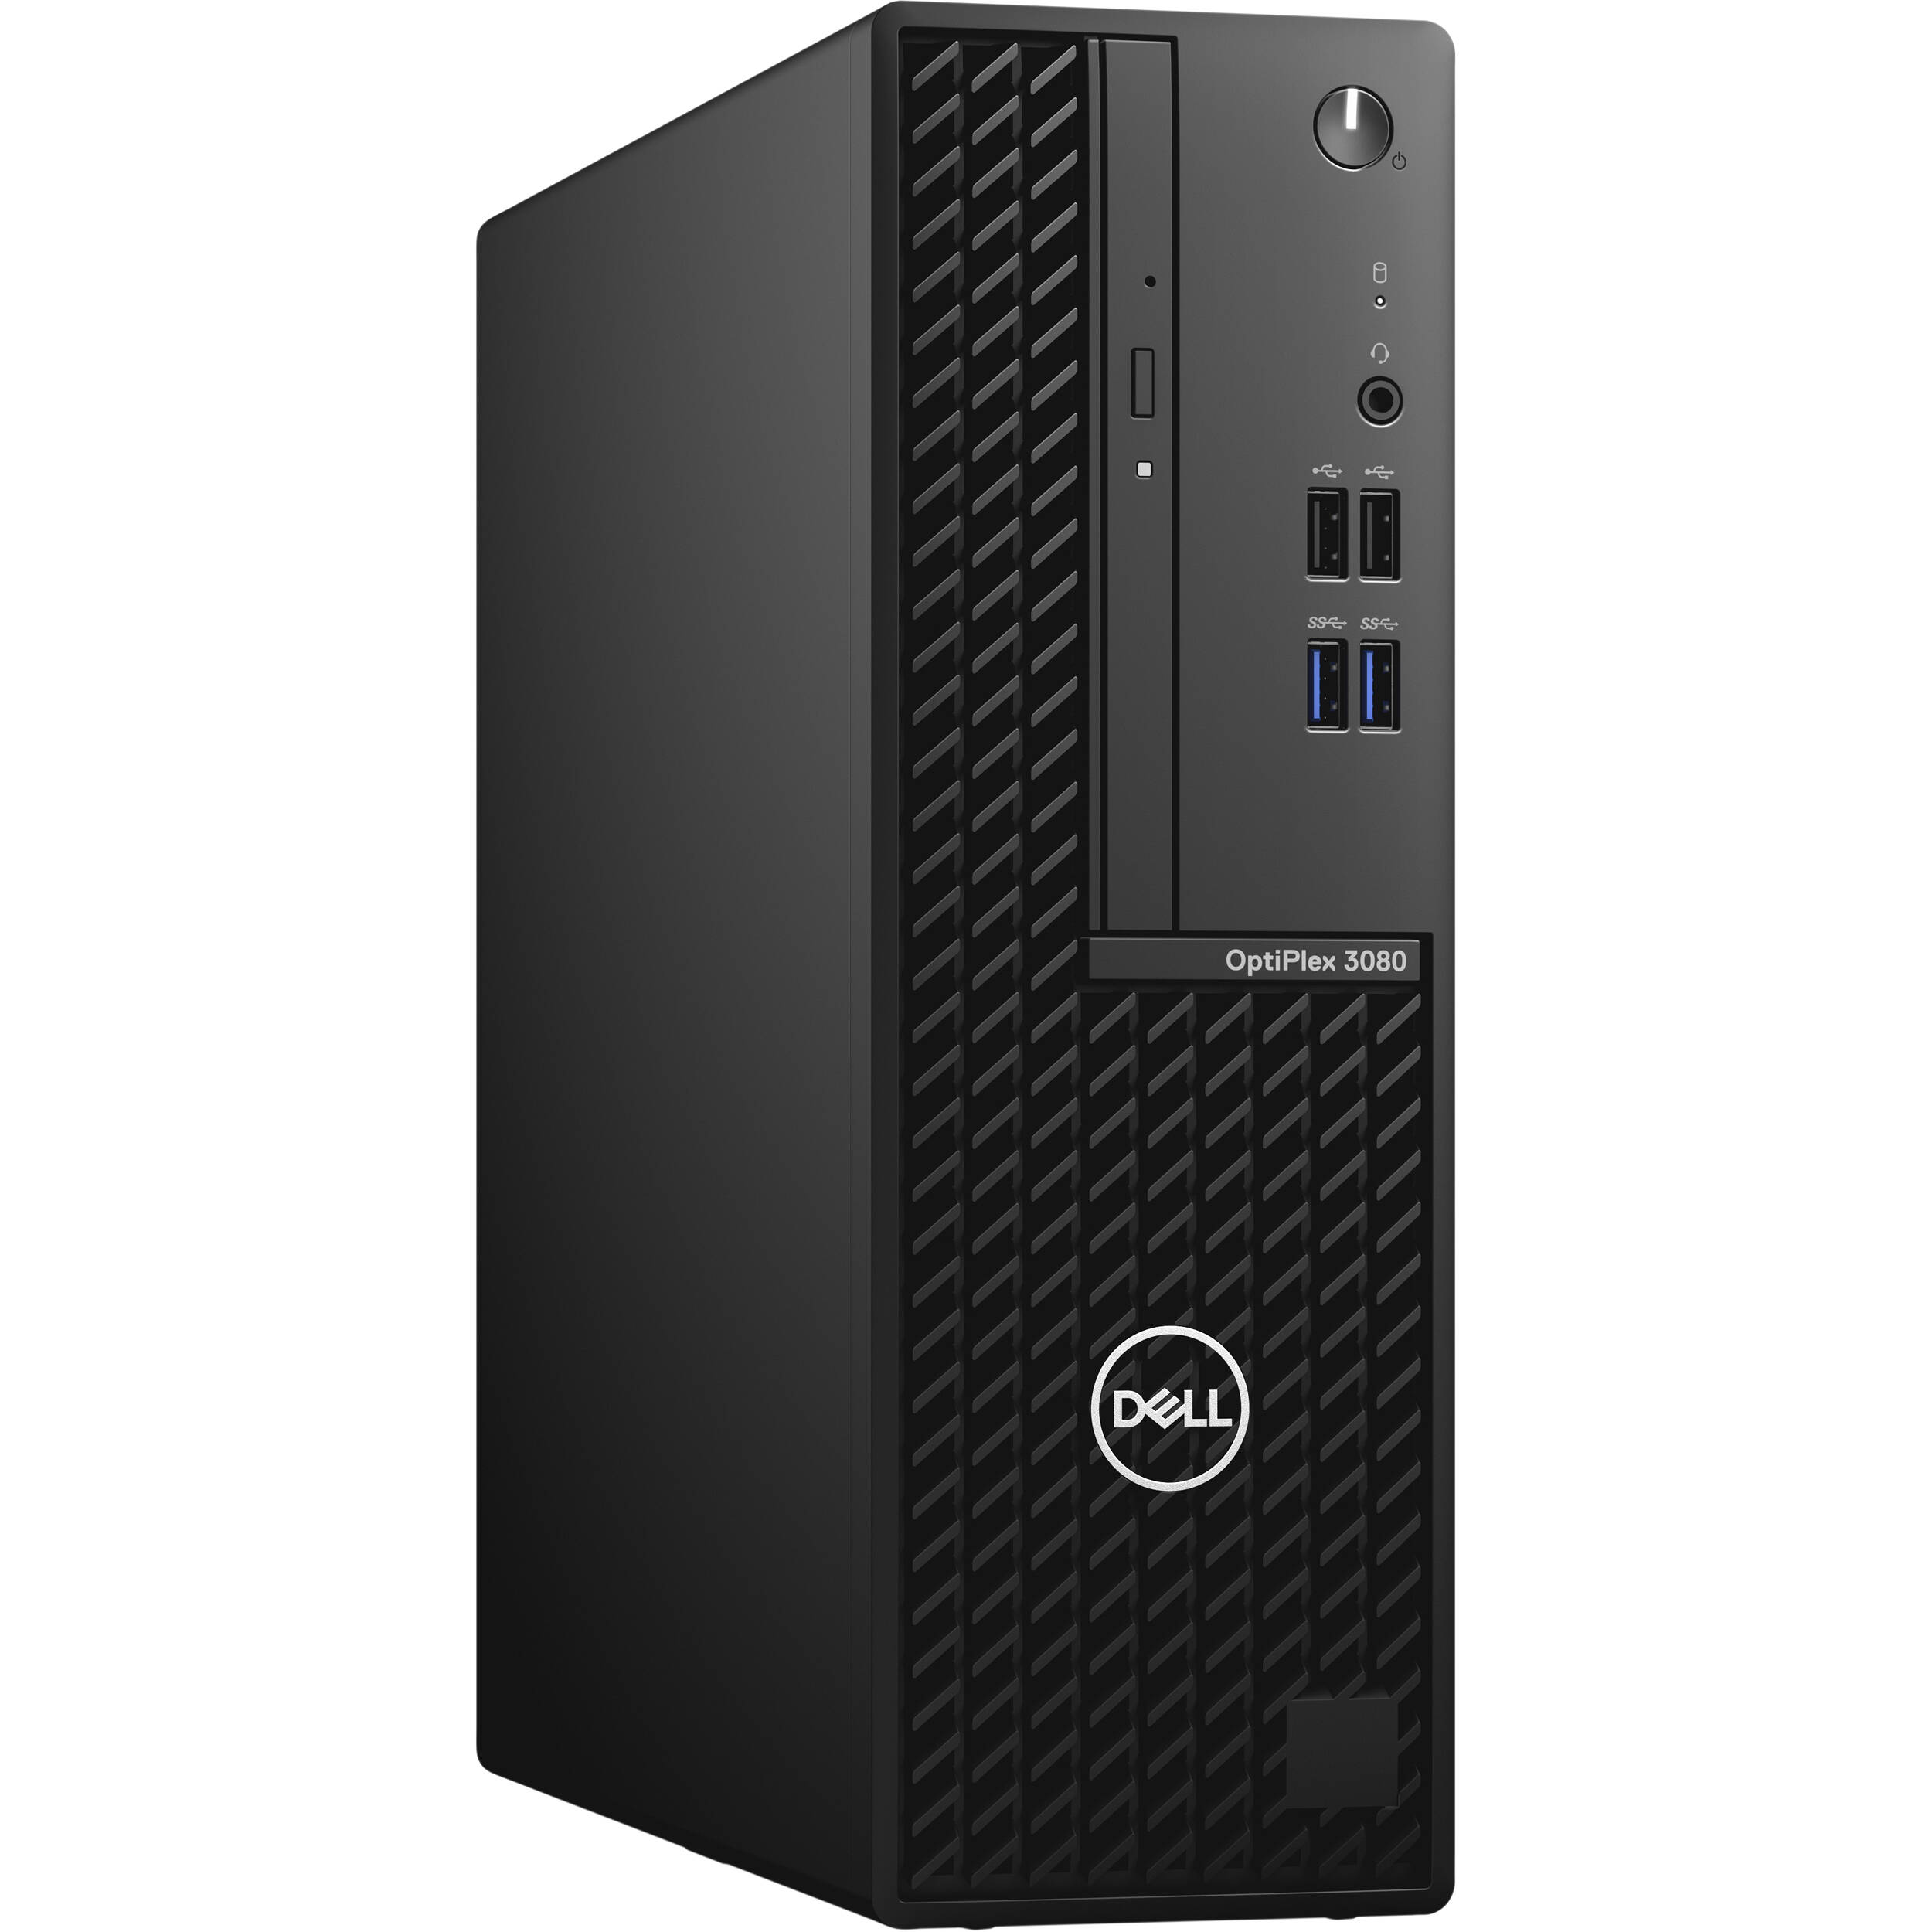 PC DELL Optiplex 3080 SFF (70233229)/ Intel Core i3-10100 (3.6GHz, 6MB)/ Ram 4GB DDR4/ HDD 1TB/ Intel UHD Graphic/ DVDRW/ Key & Mouse/ Fedora/ 3Yrs